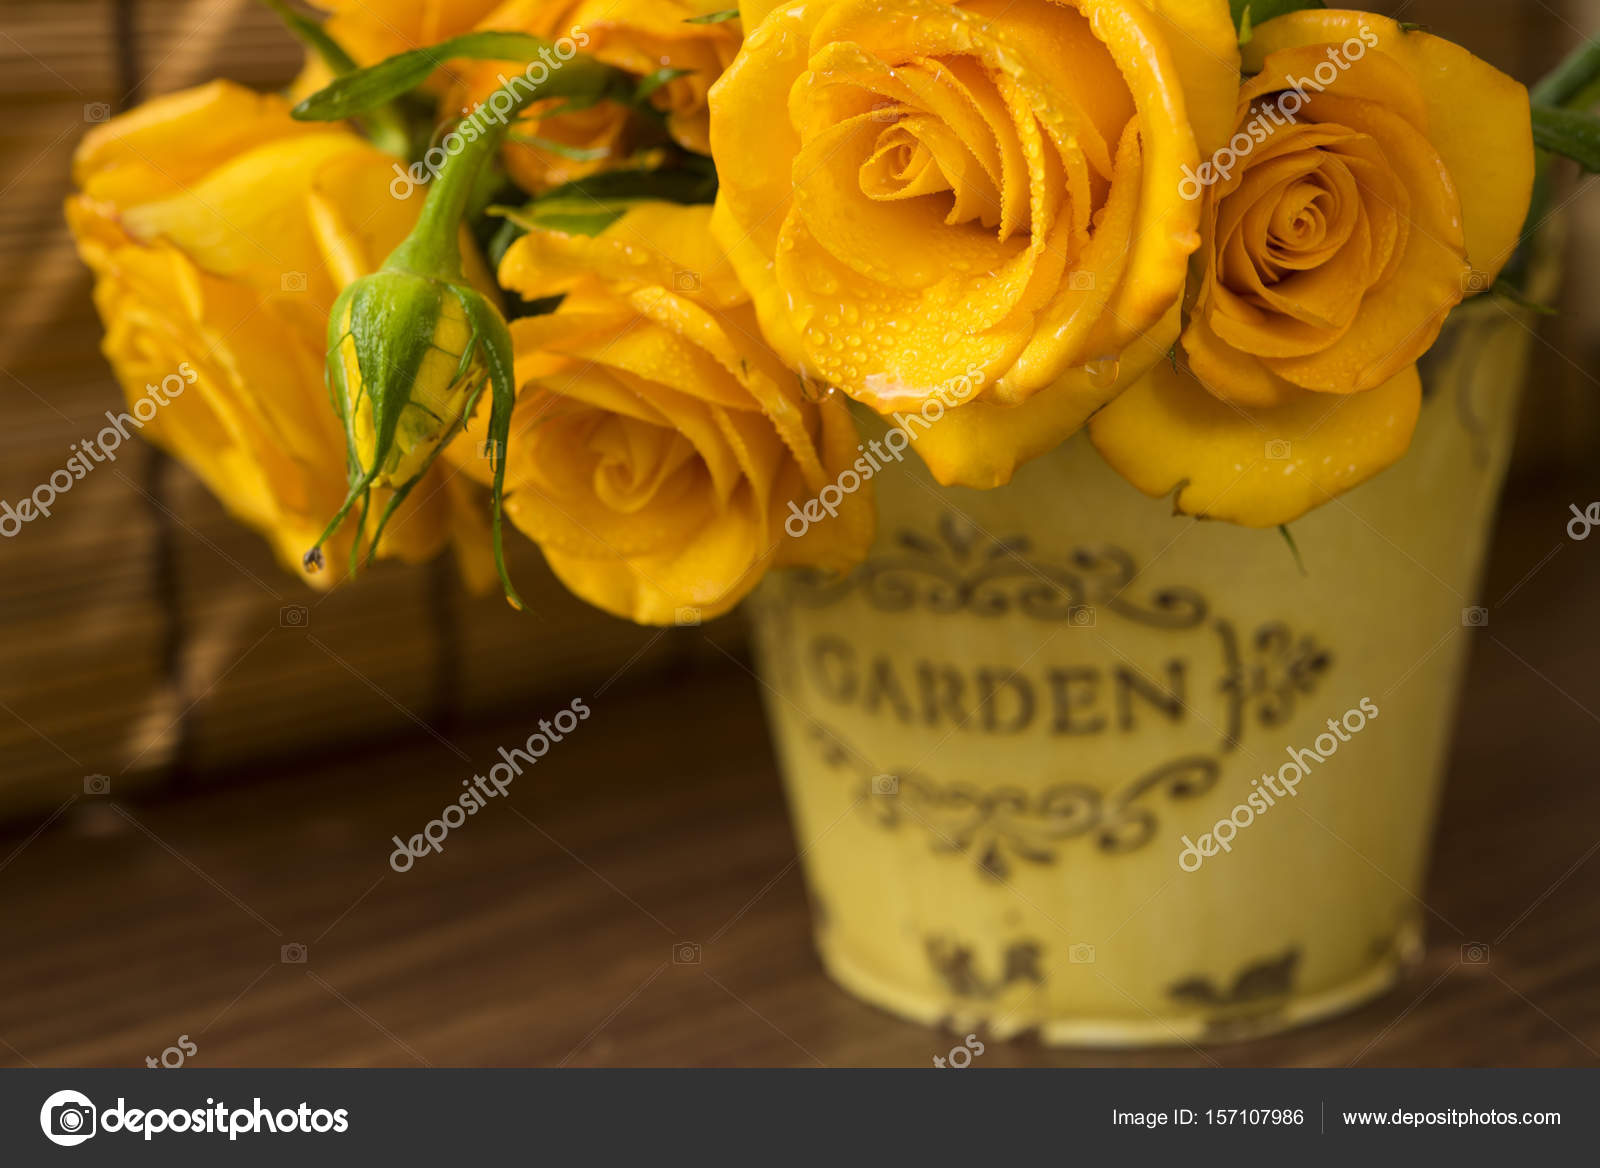 depositphotos stock photo yellow buds of roses in